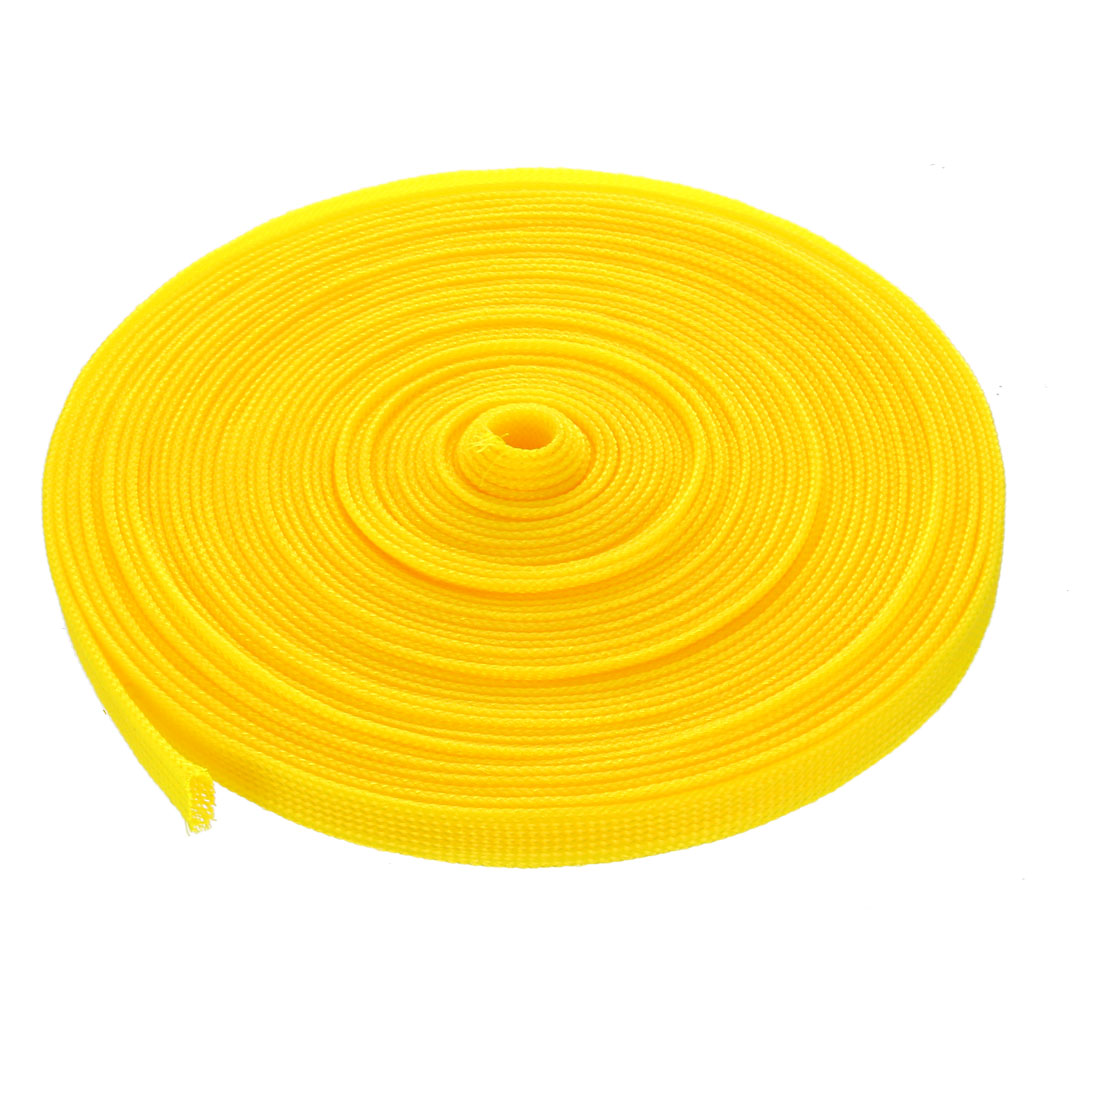 10mm Dia Tight Braided PET Expandable Sleeving Cable Wire Wrap Sheath Yellow 10M